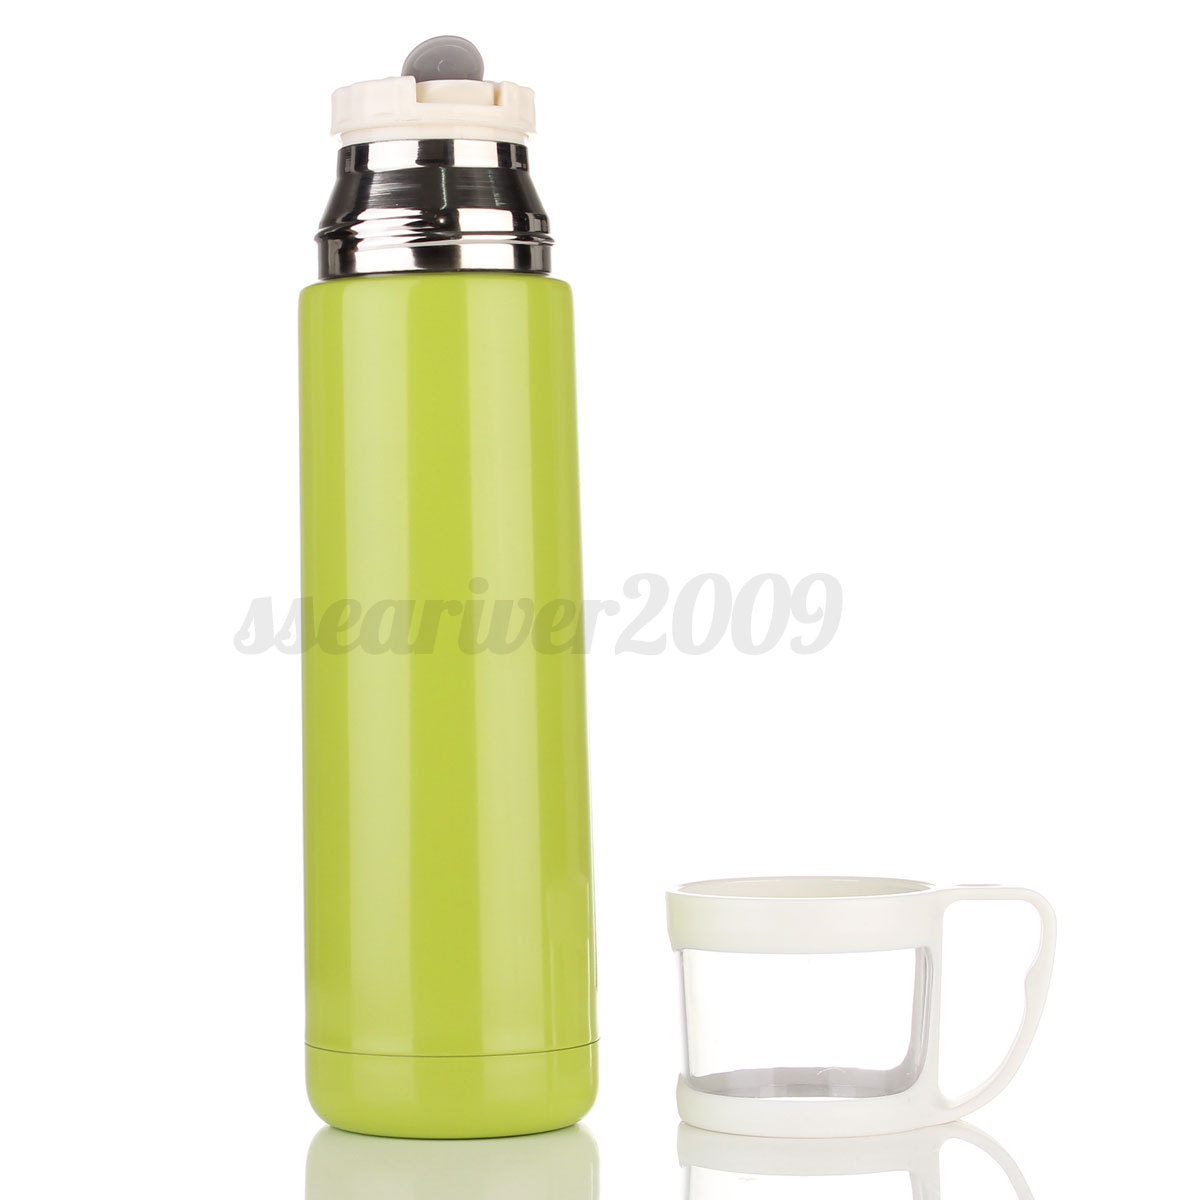 NEW 500ML Stainless Steel Travel Mug water Vacuum ...